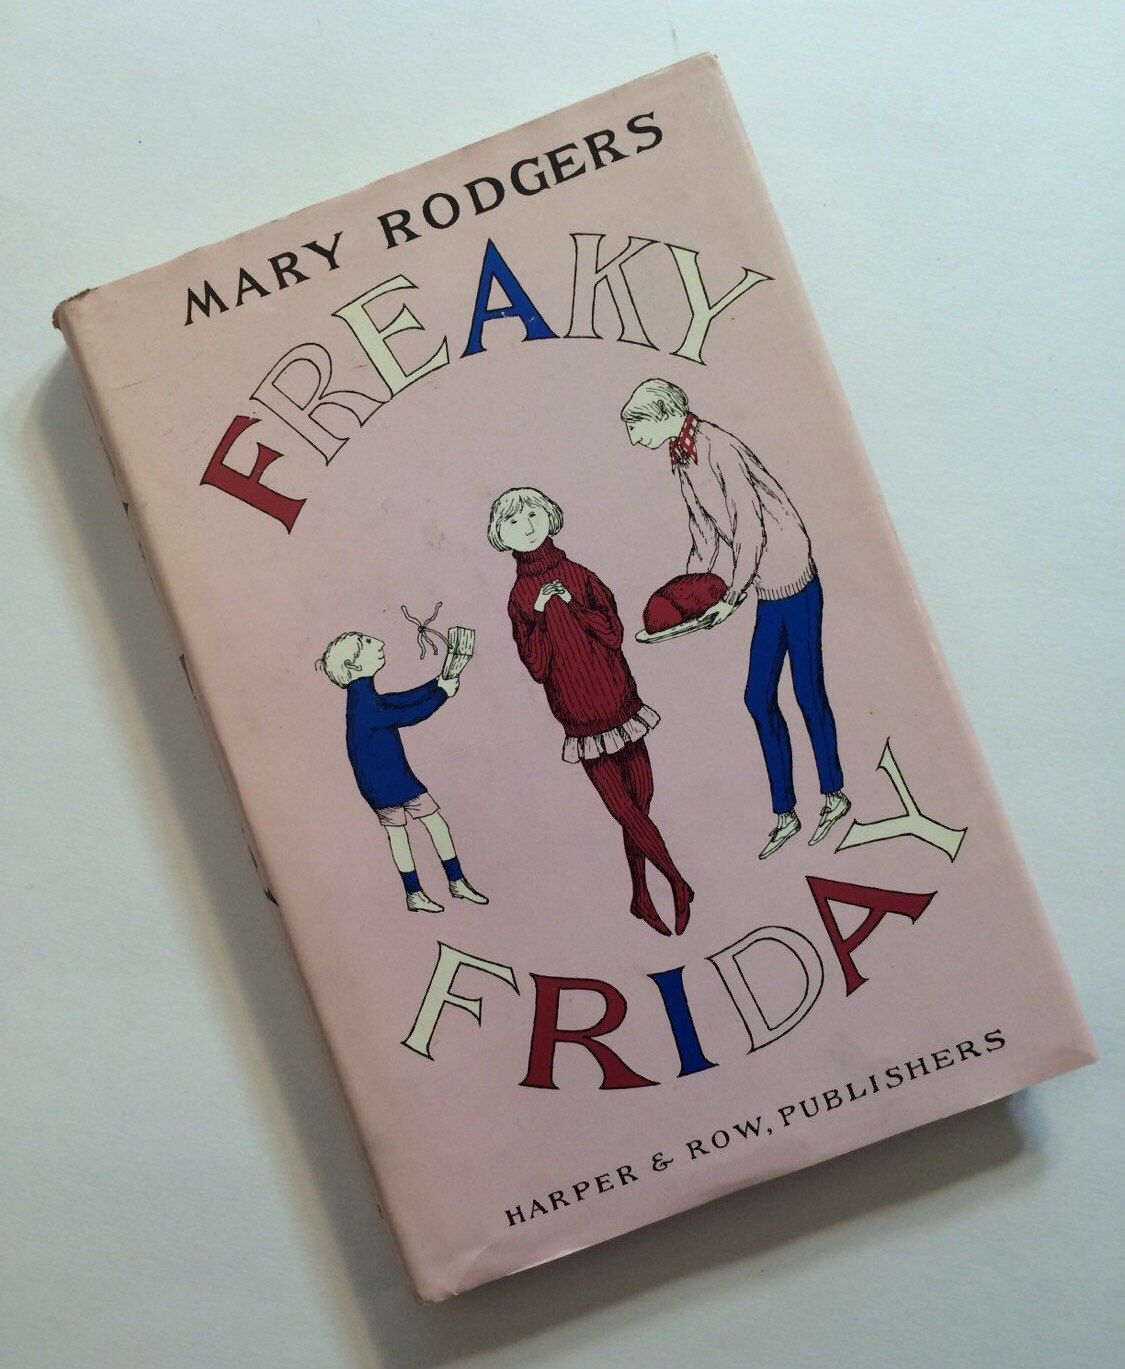 Vintage Book - Freaky Friday by Mary Rodger - First Edition by SuburbanVintage on Etsy https://www.etsy.com/listing/398324009/vintage-book-freaky-friday-by-mary